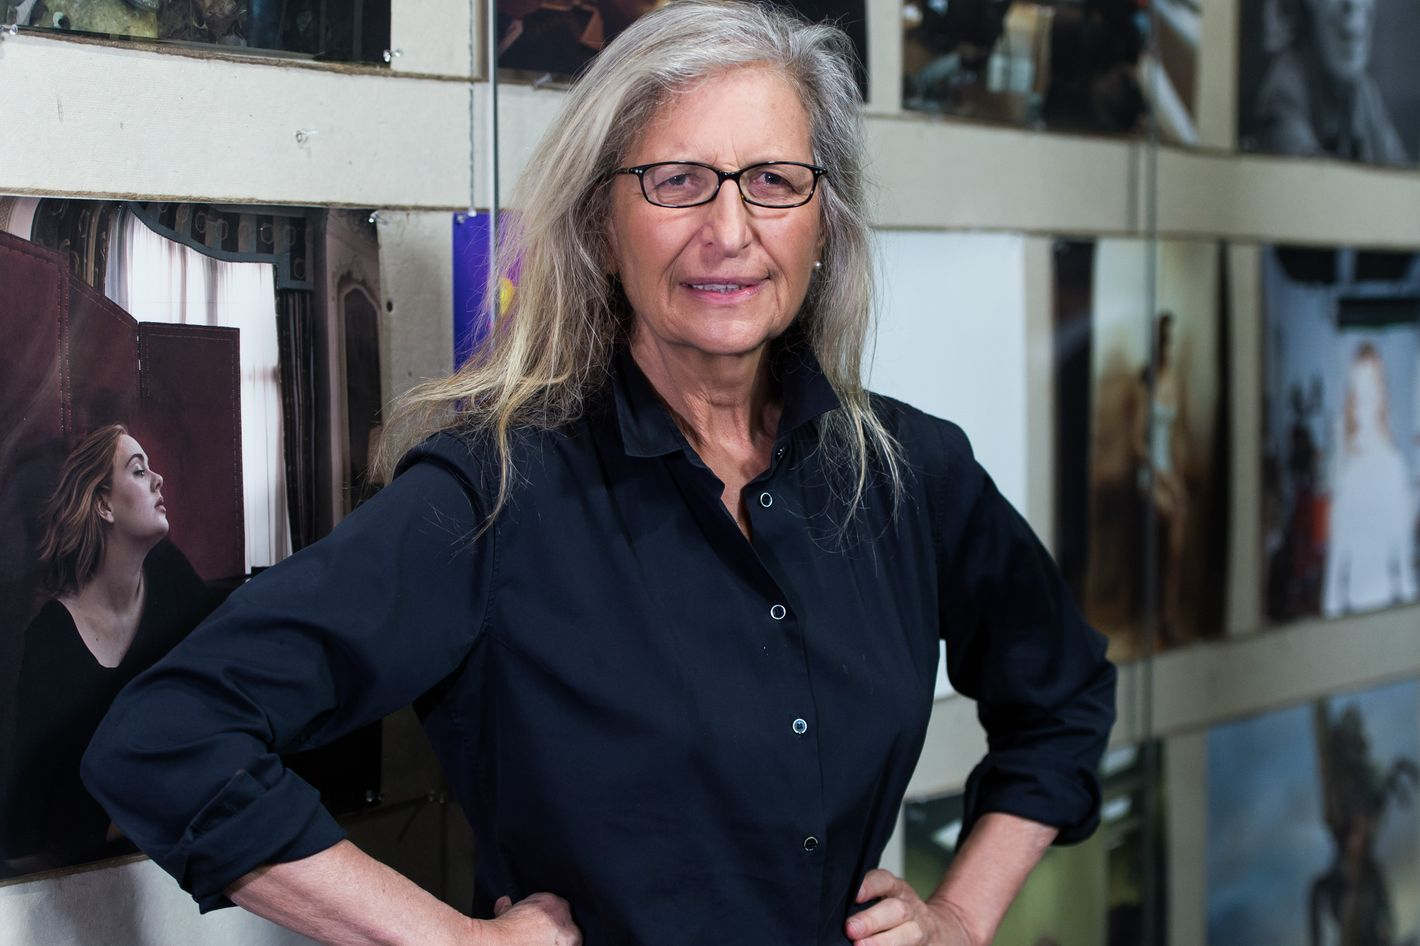 Annie Leibovitz Unveiled An Impressive Series Of Portraits Featuring Notable Women